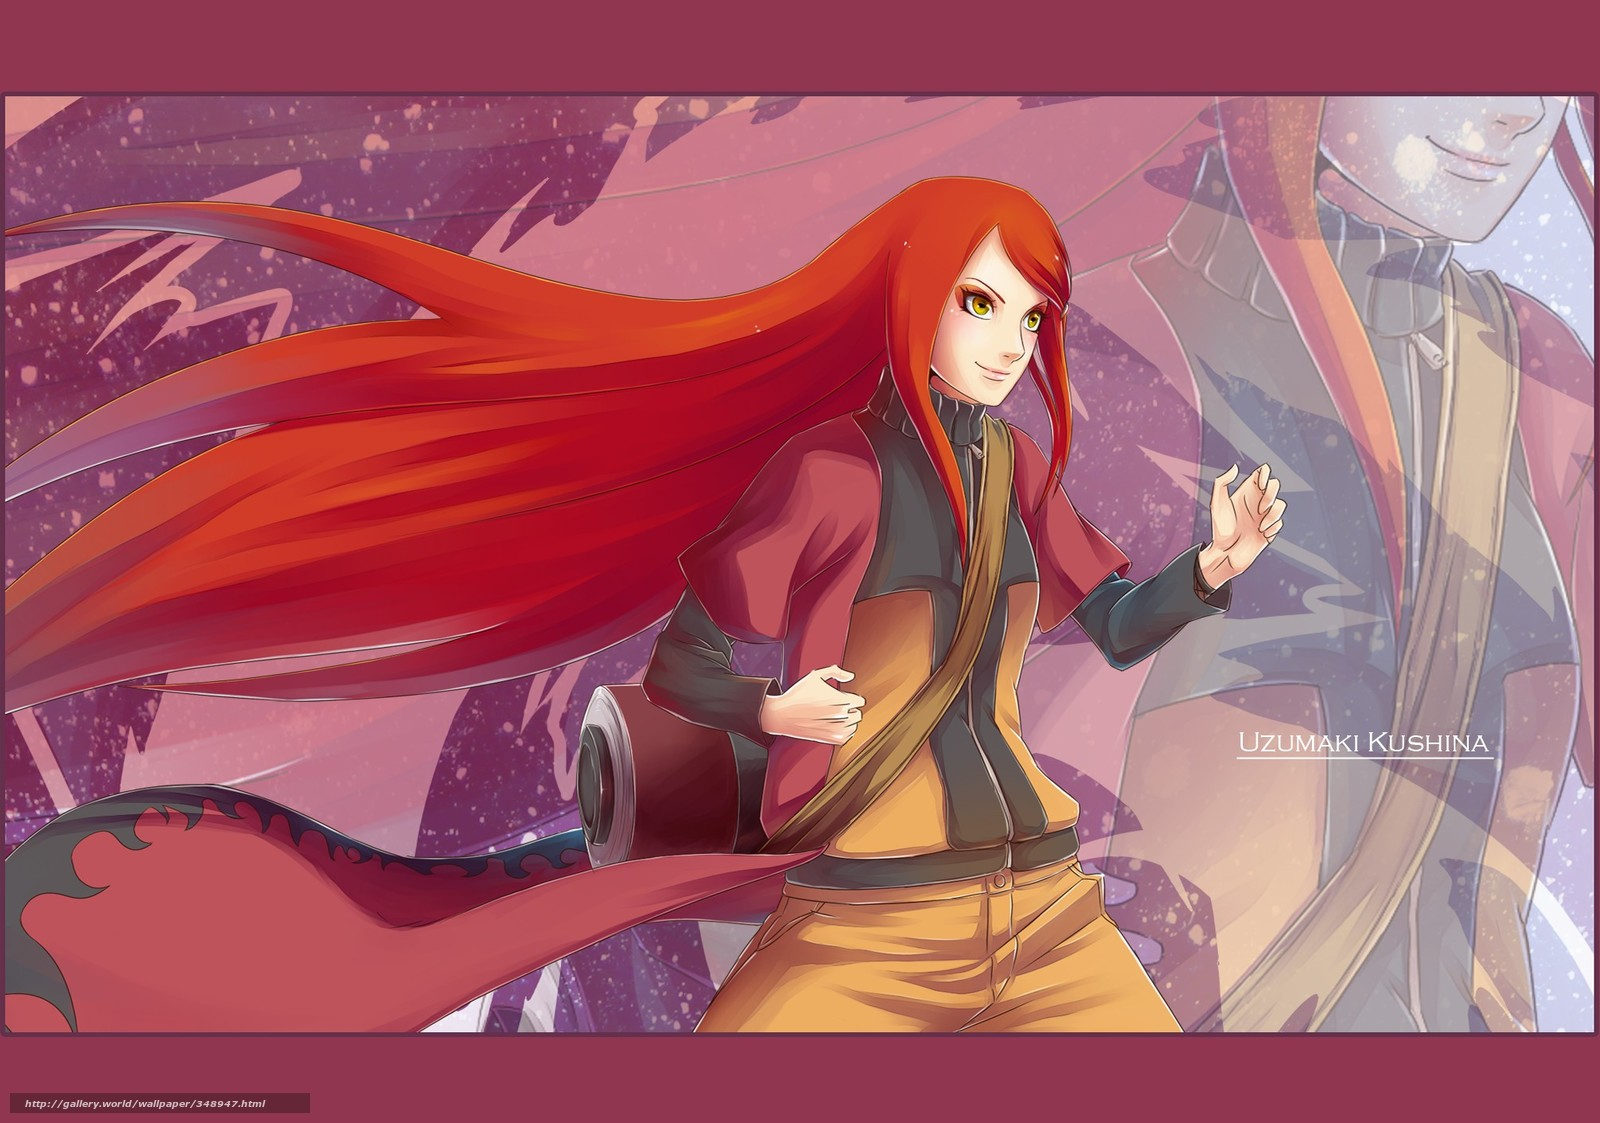 Download wallpaper naruto,  uzumaki kushina,  girl free desktop wallpaper in the resolution 2011x1411 — picture №348947